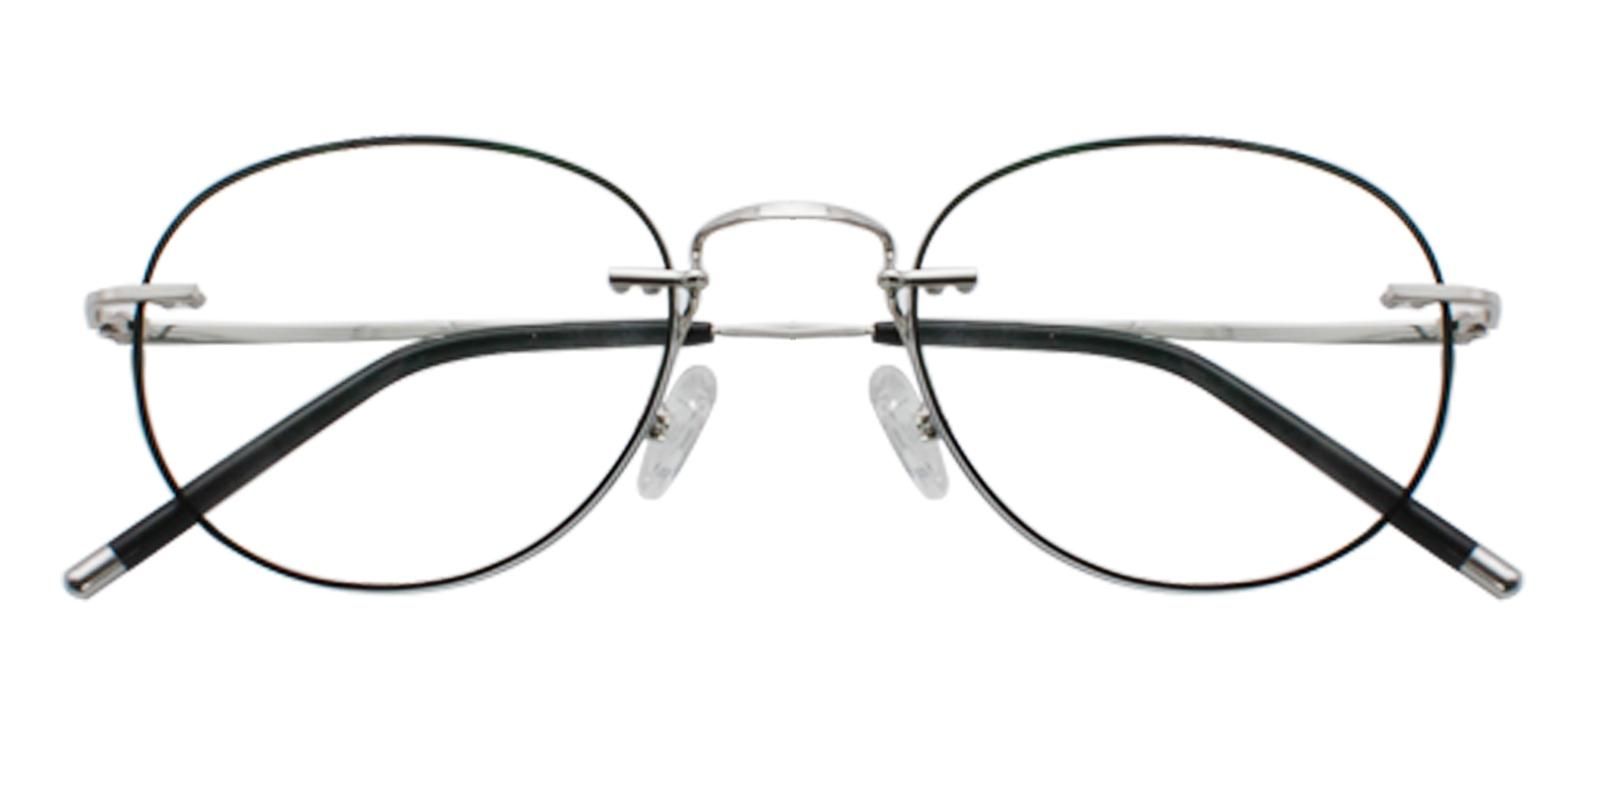 Jade Black Titanium NosePads , Eyeglasses Frames from ABBE Glasses